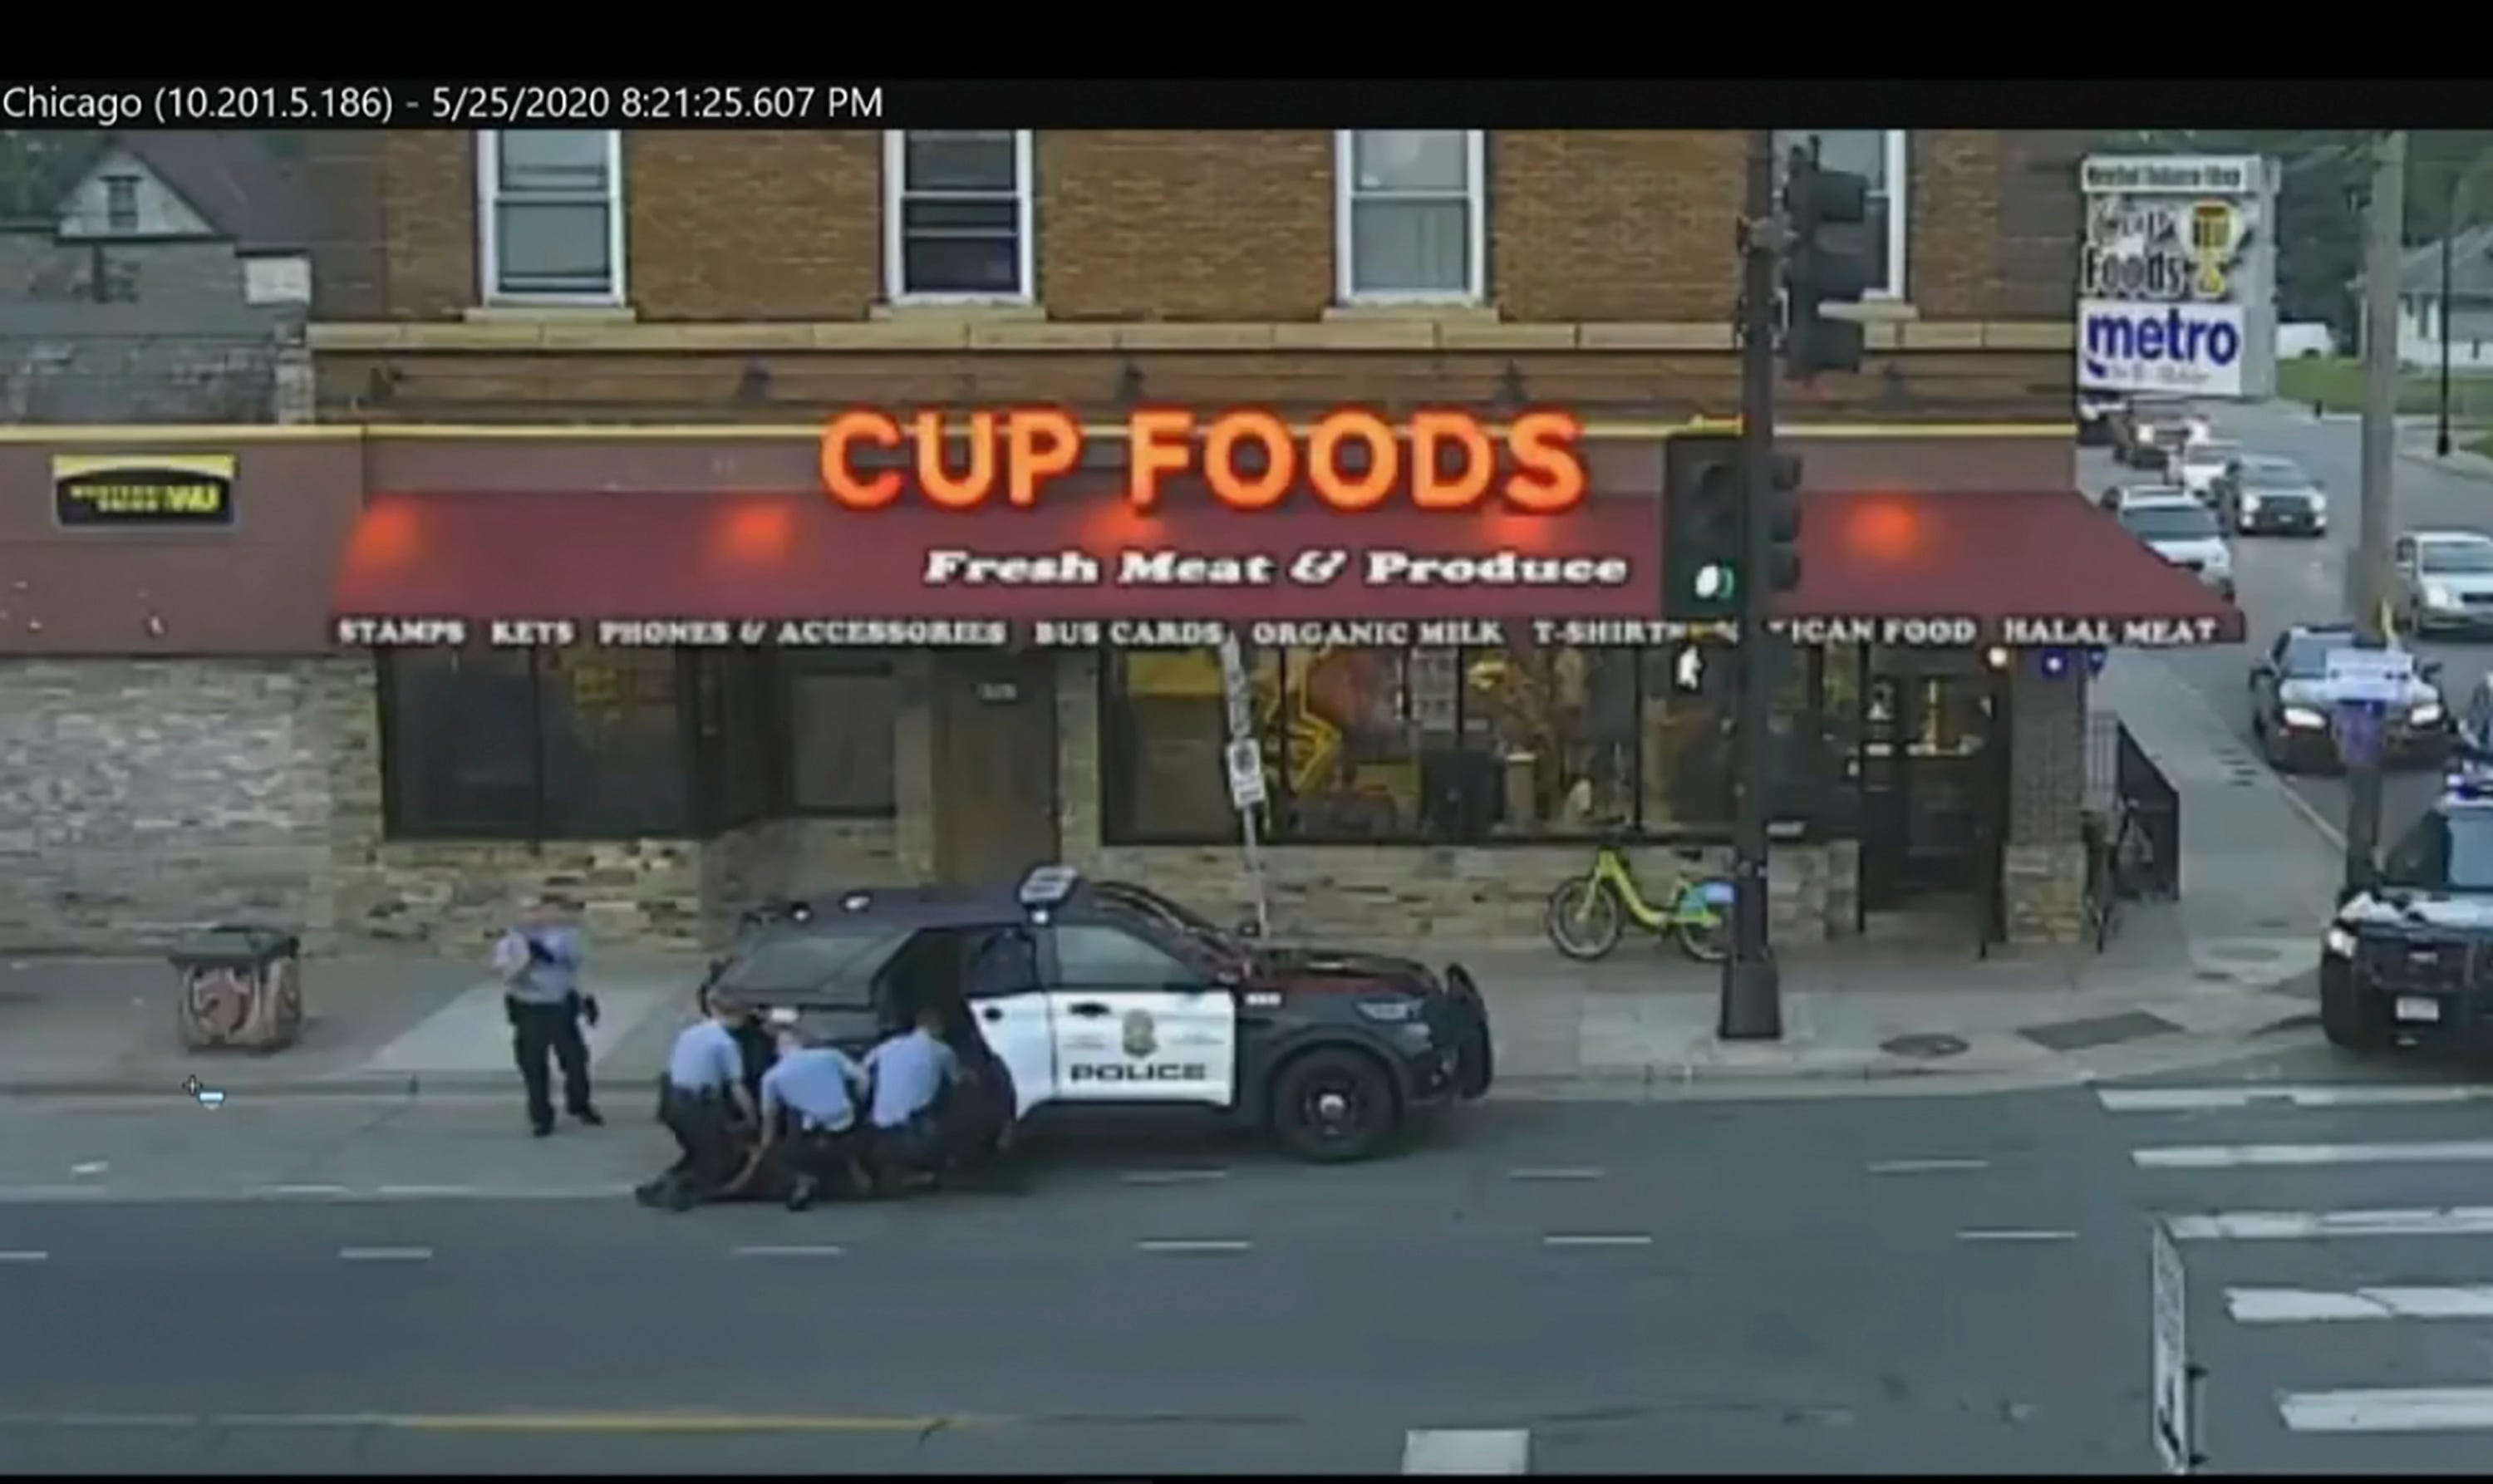 Minneapolis city surveillance video shows police trying to take George Floyd into custody in Minneapolis on May 25, 2020. The video was shown in the trial of former Minneapolis police officer Derek Chauvin.